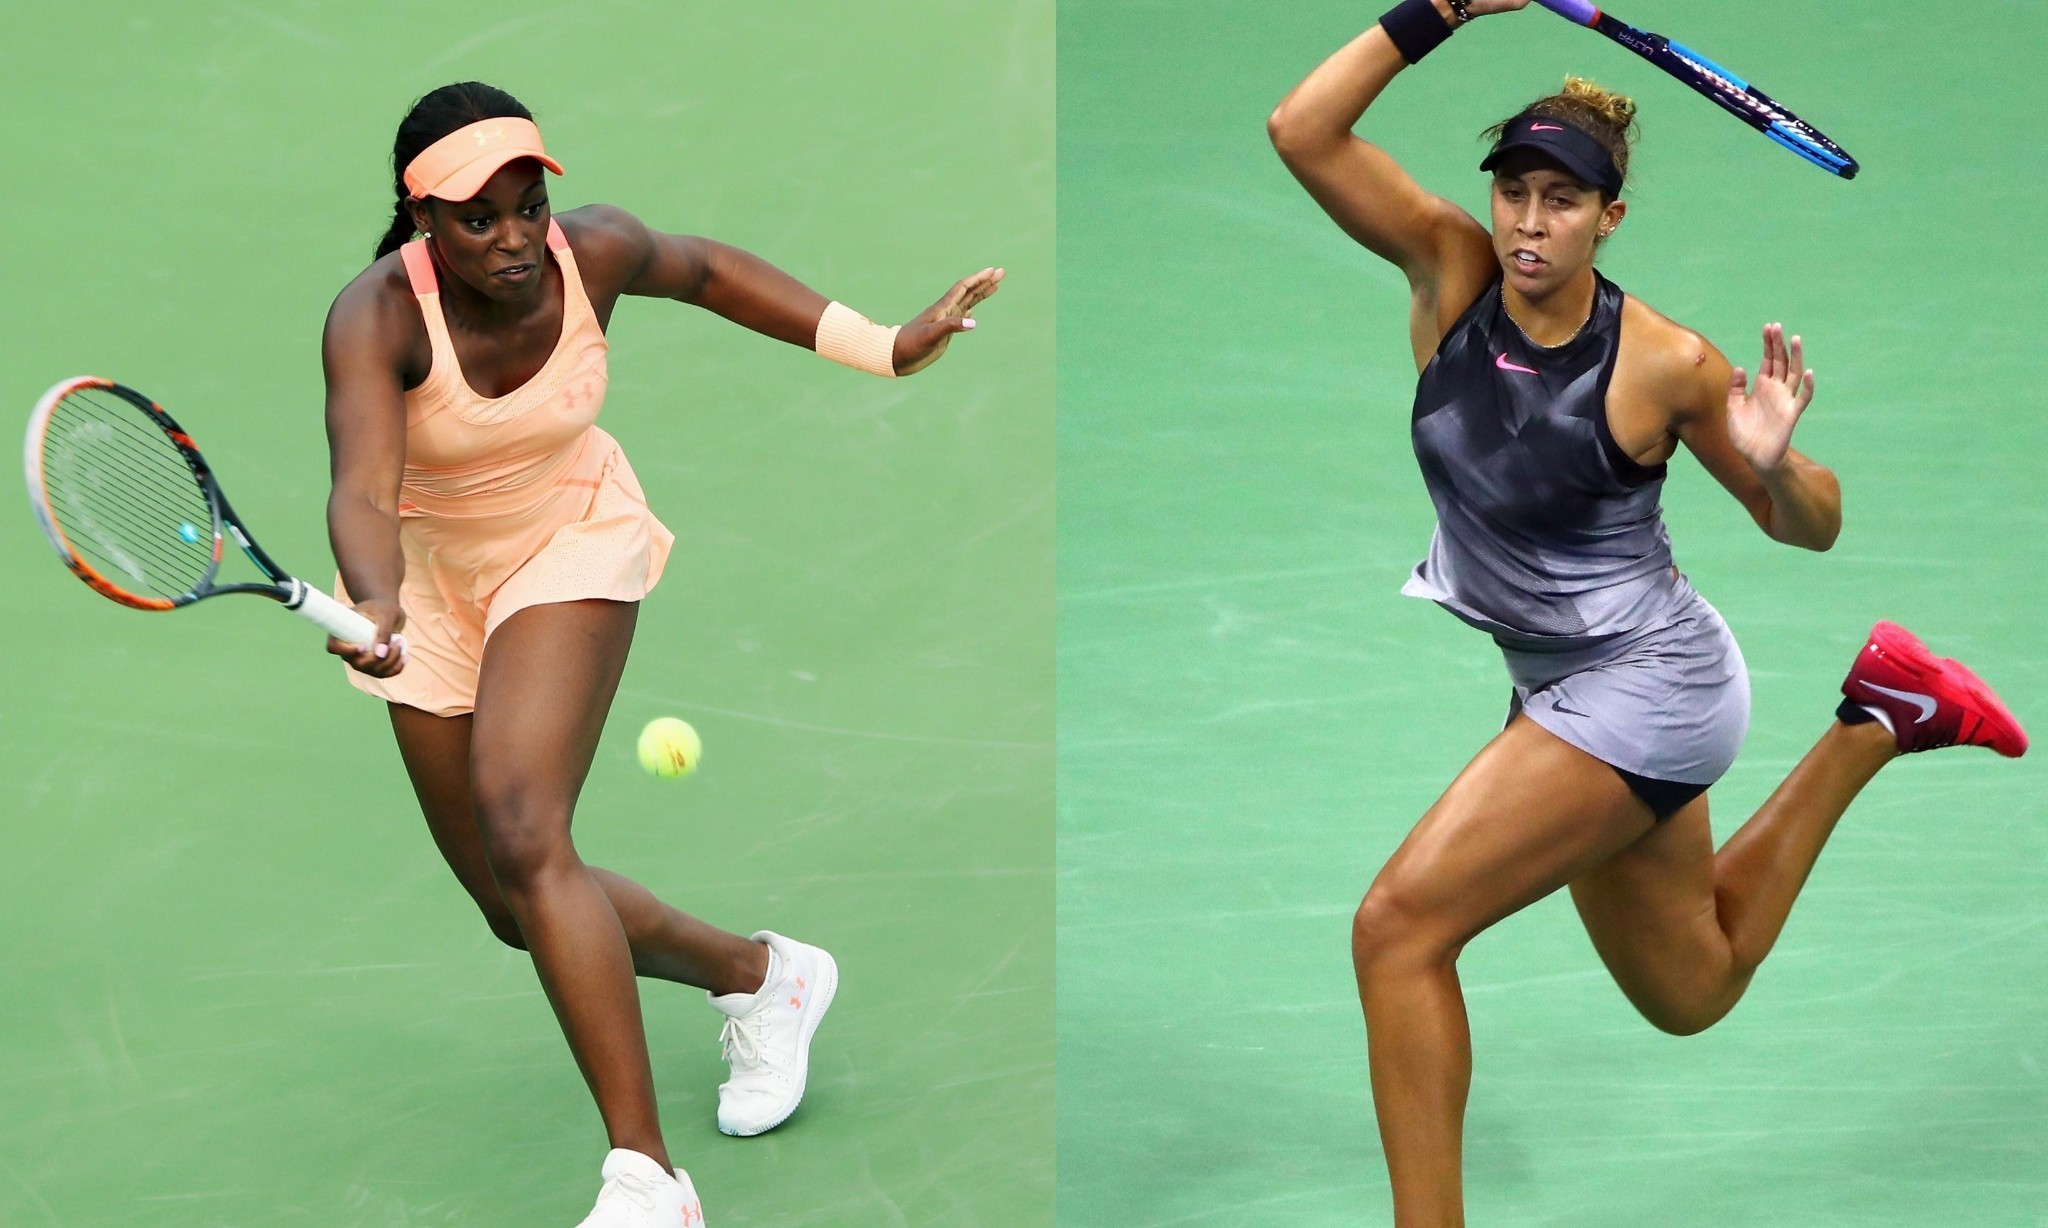 Madison Keys v Sloane Stephens: US Open women's final – live!